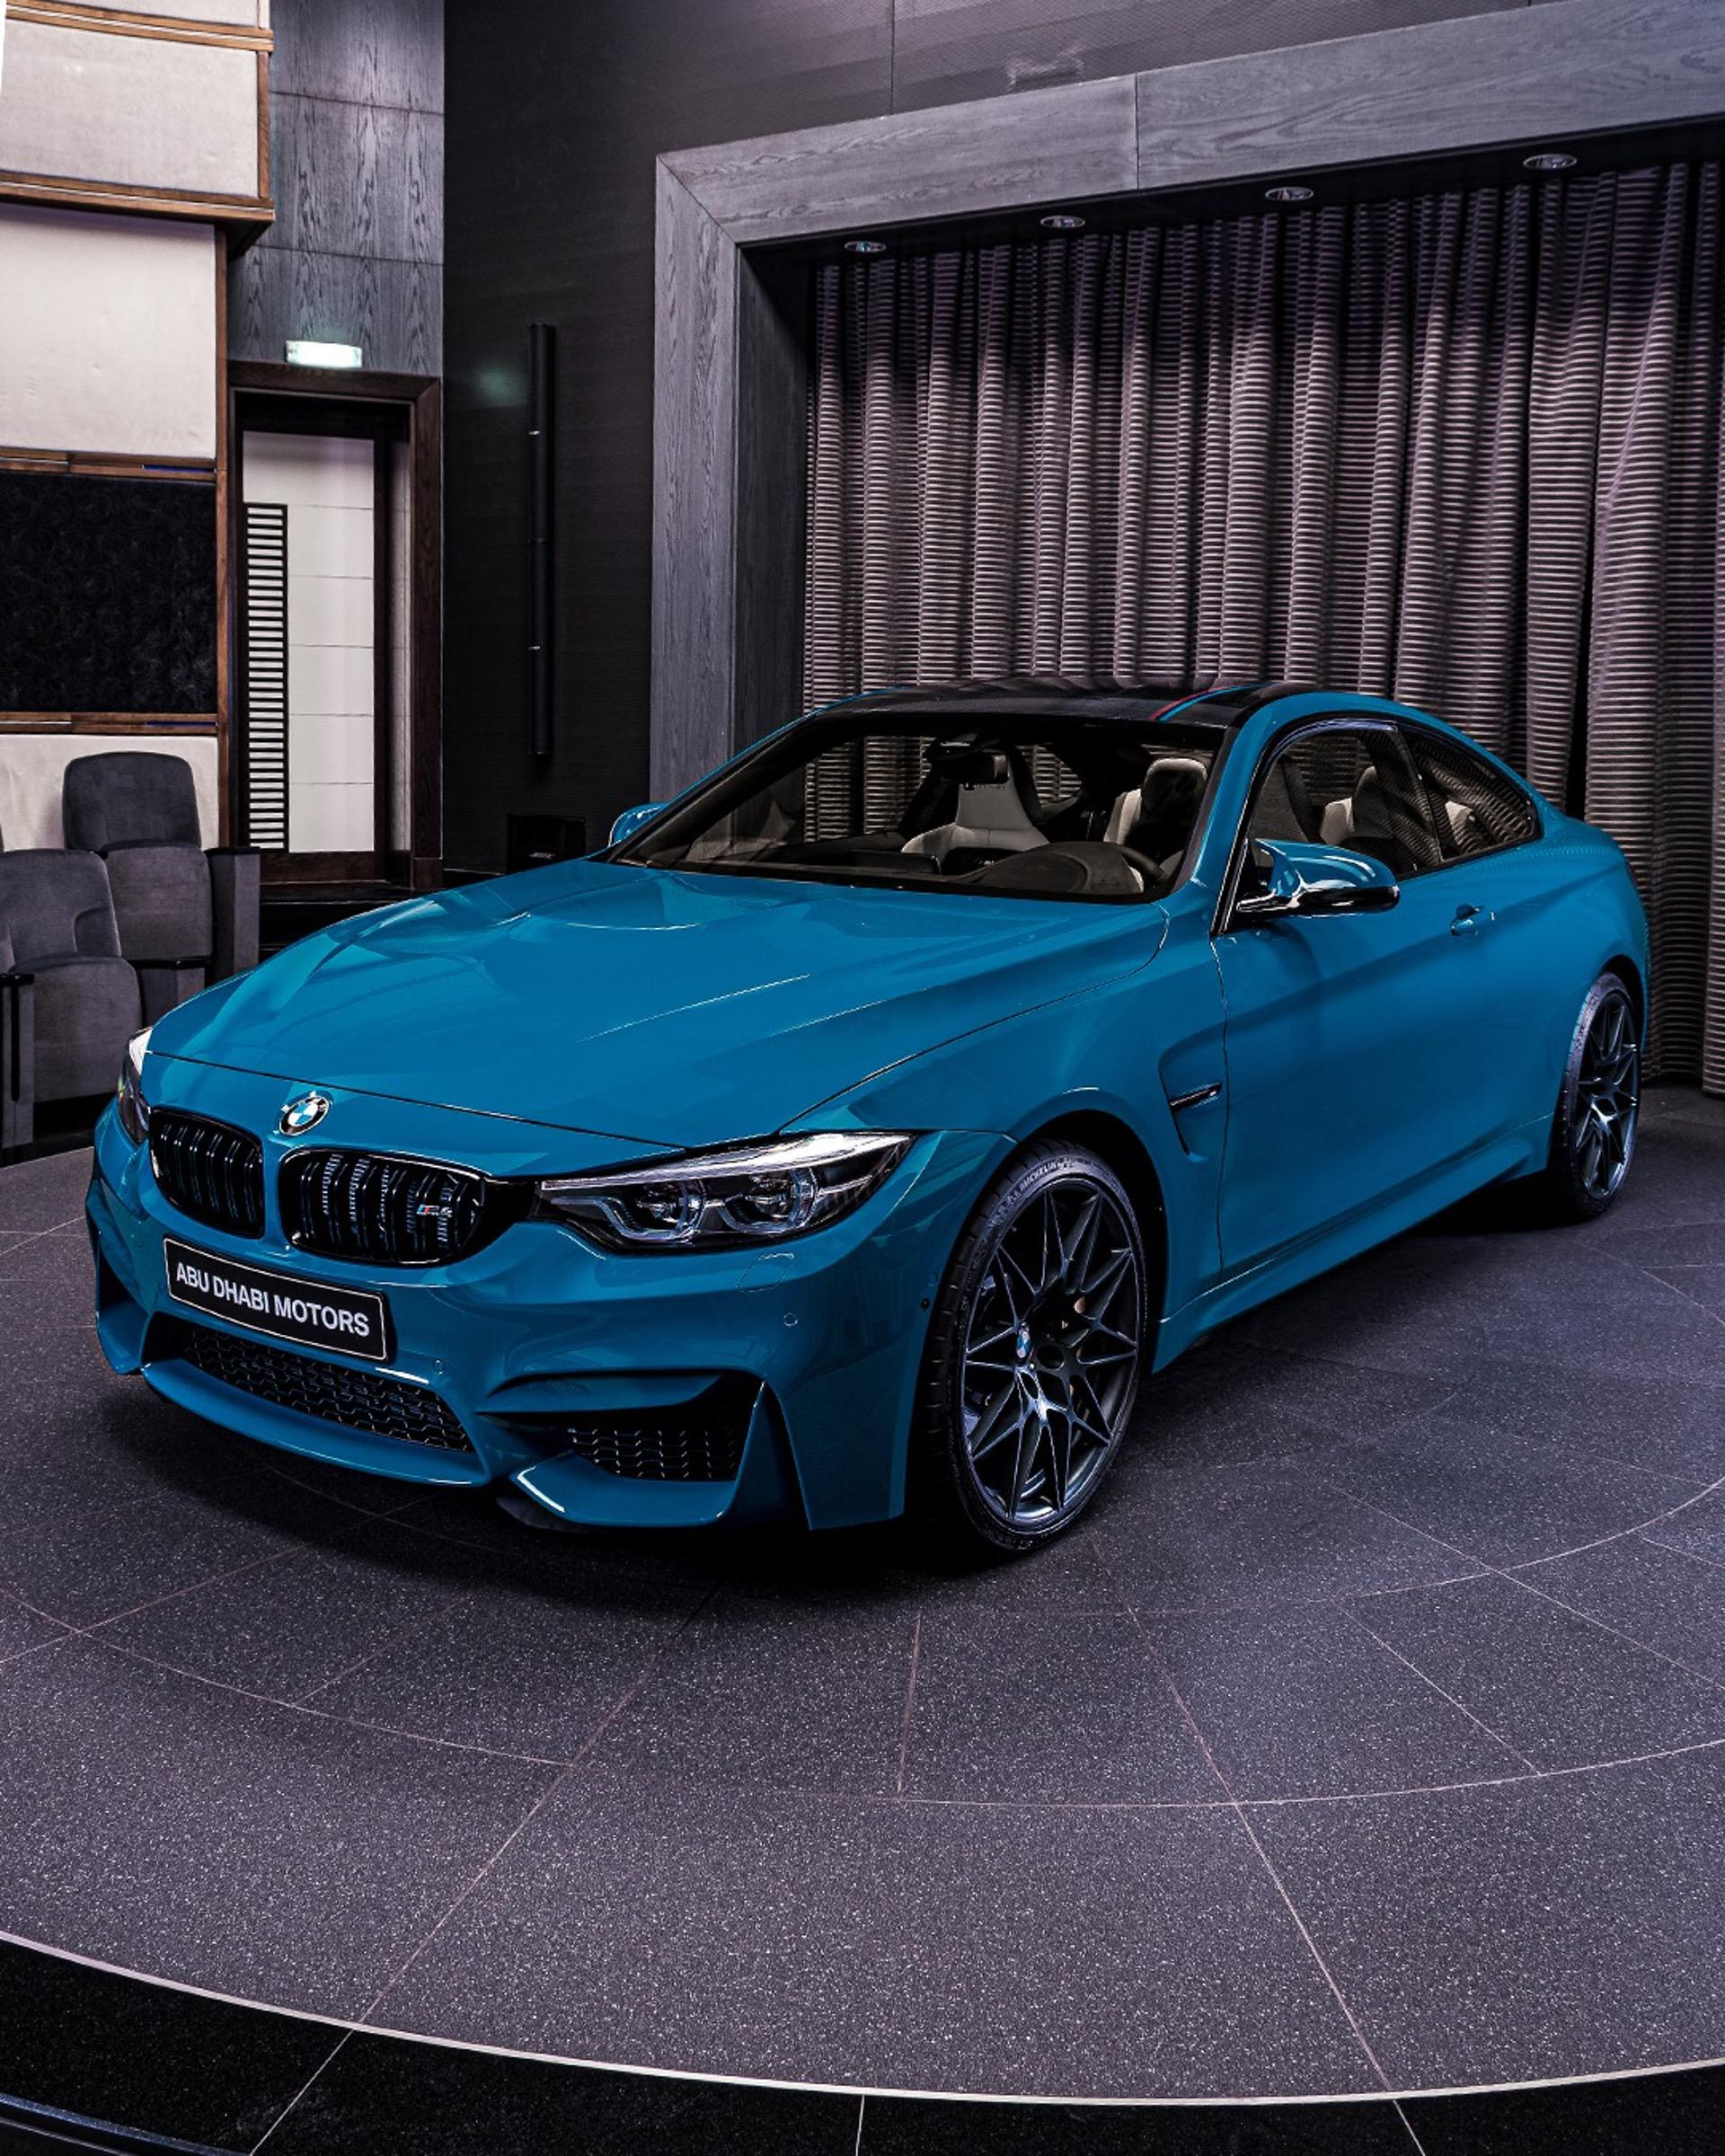 Bmw M4 Edition M Heritage Is Presented In Laguna Seca Blue